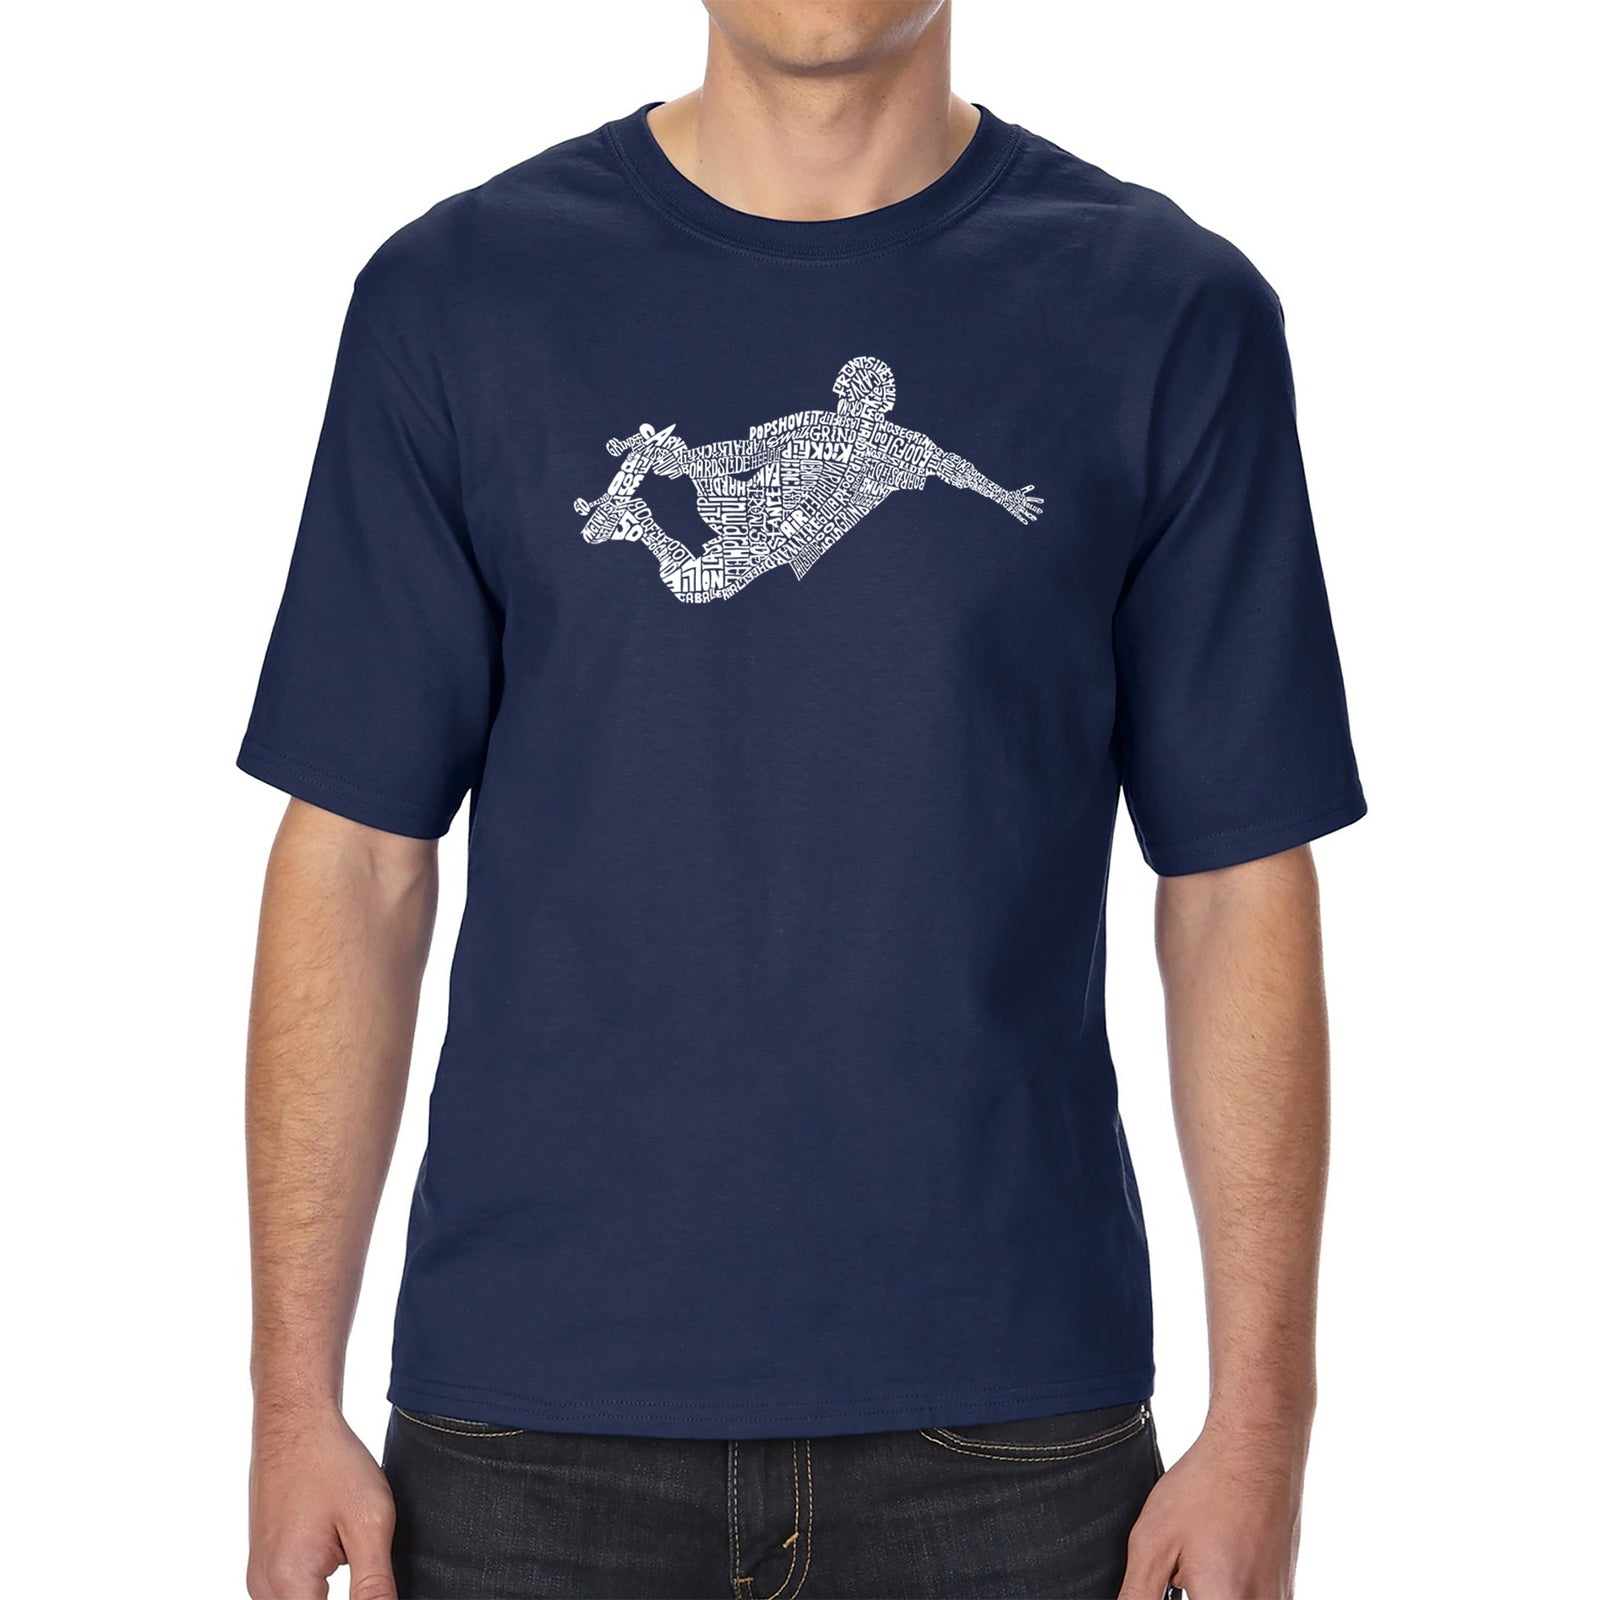 Men's Tall and Long Word Art T-shirt - POPULAR SKATING MOVES & TRICKS